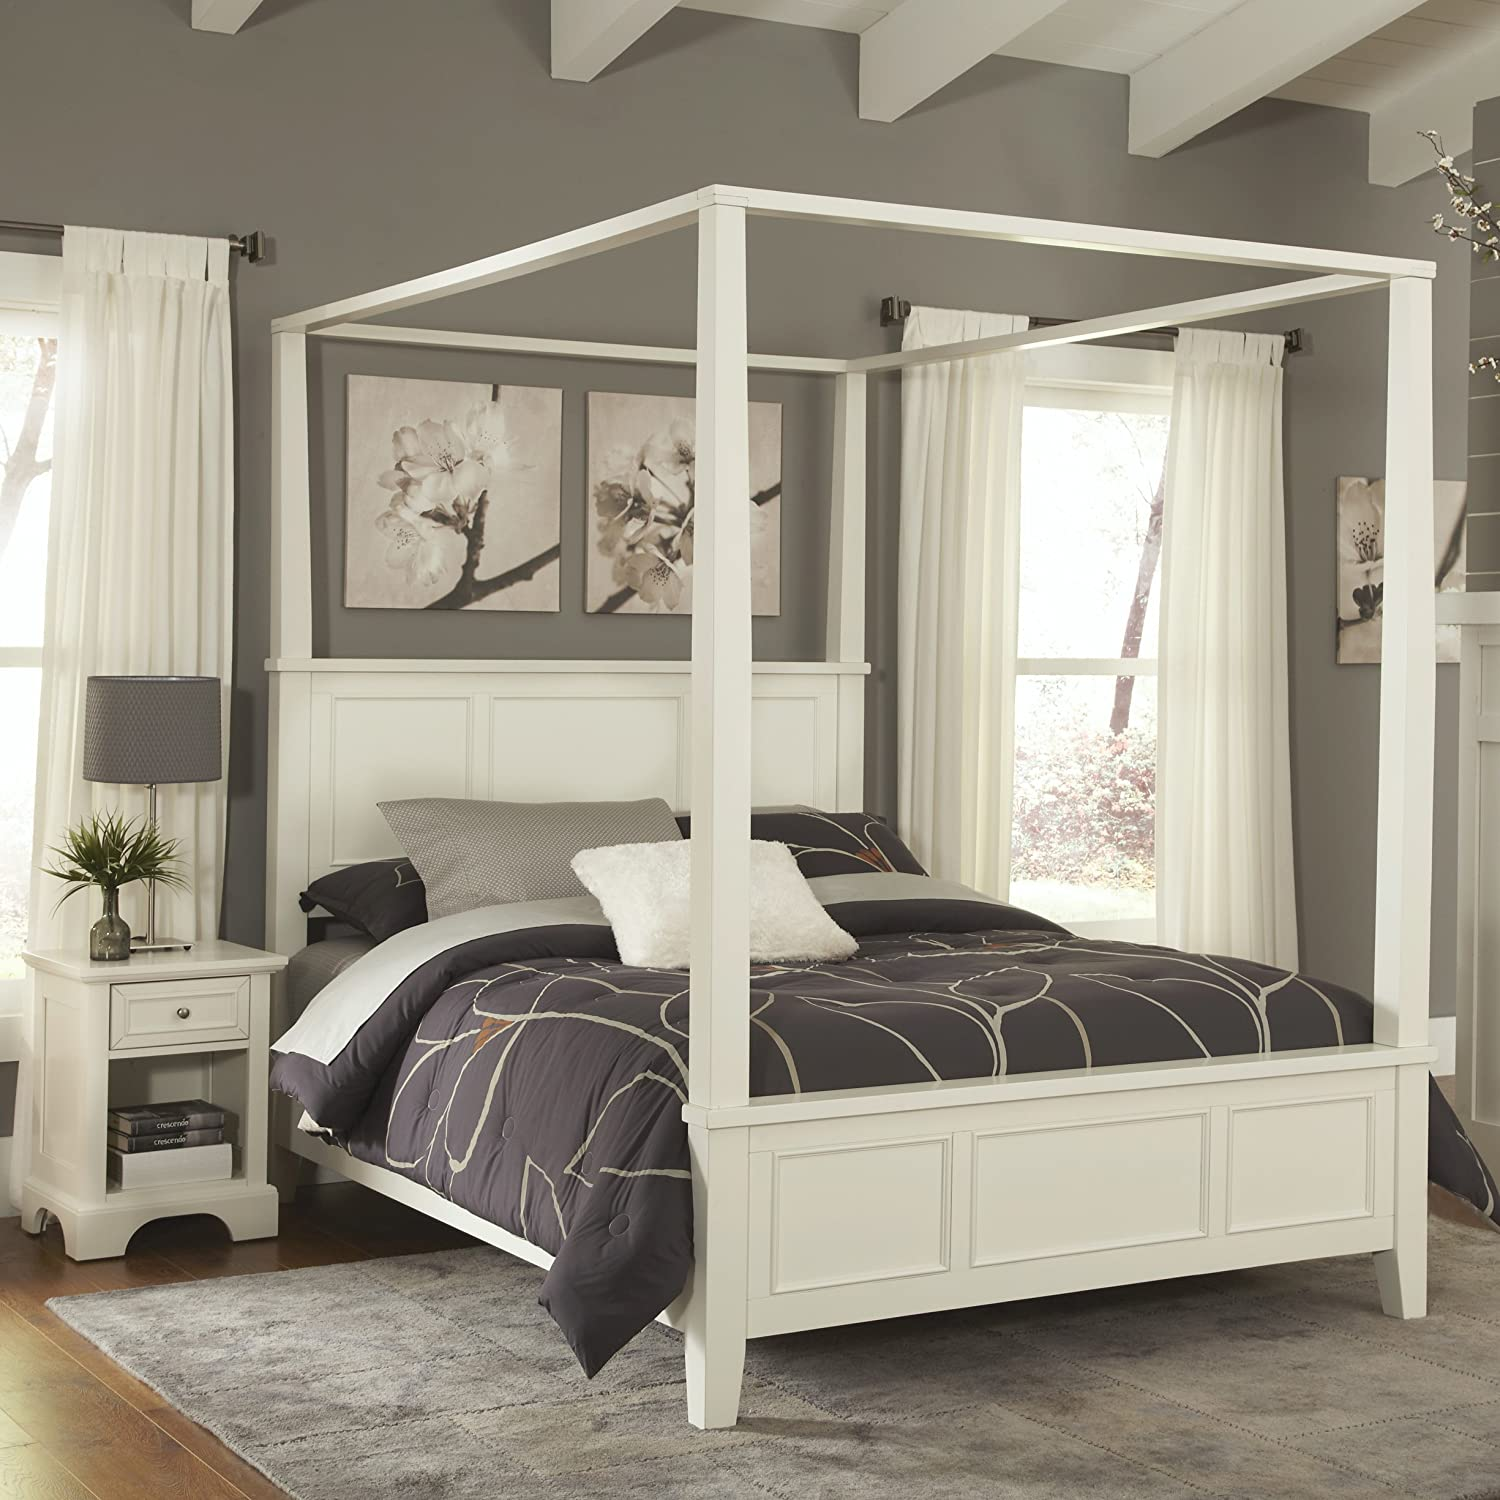 Amazon Home Styles Naples White Queen Canopy Bed and Night